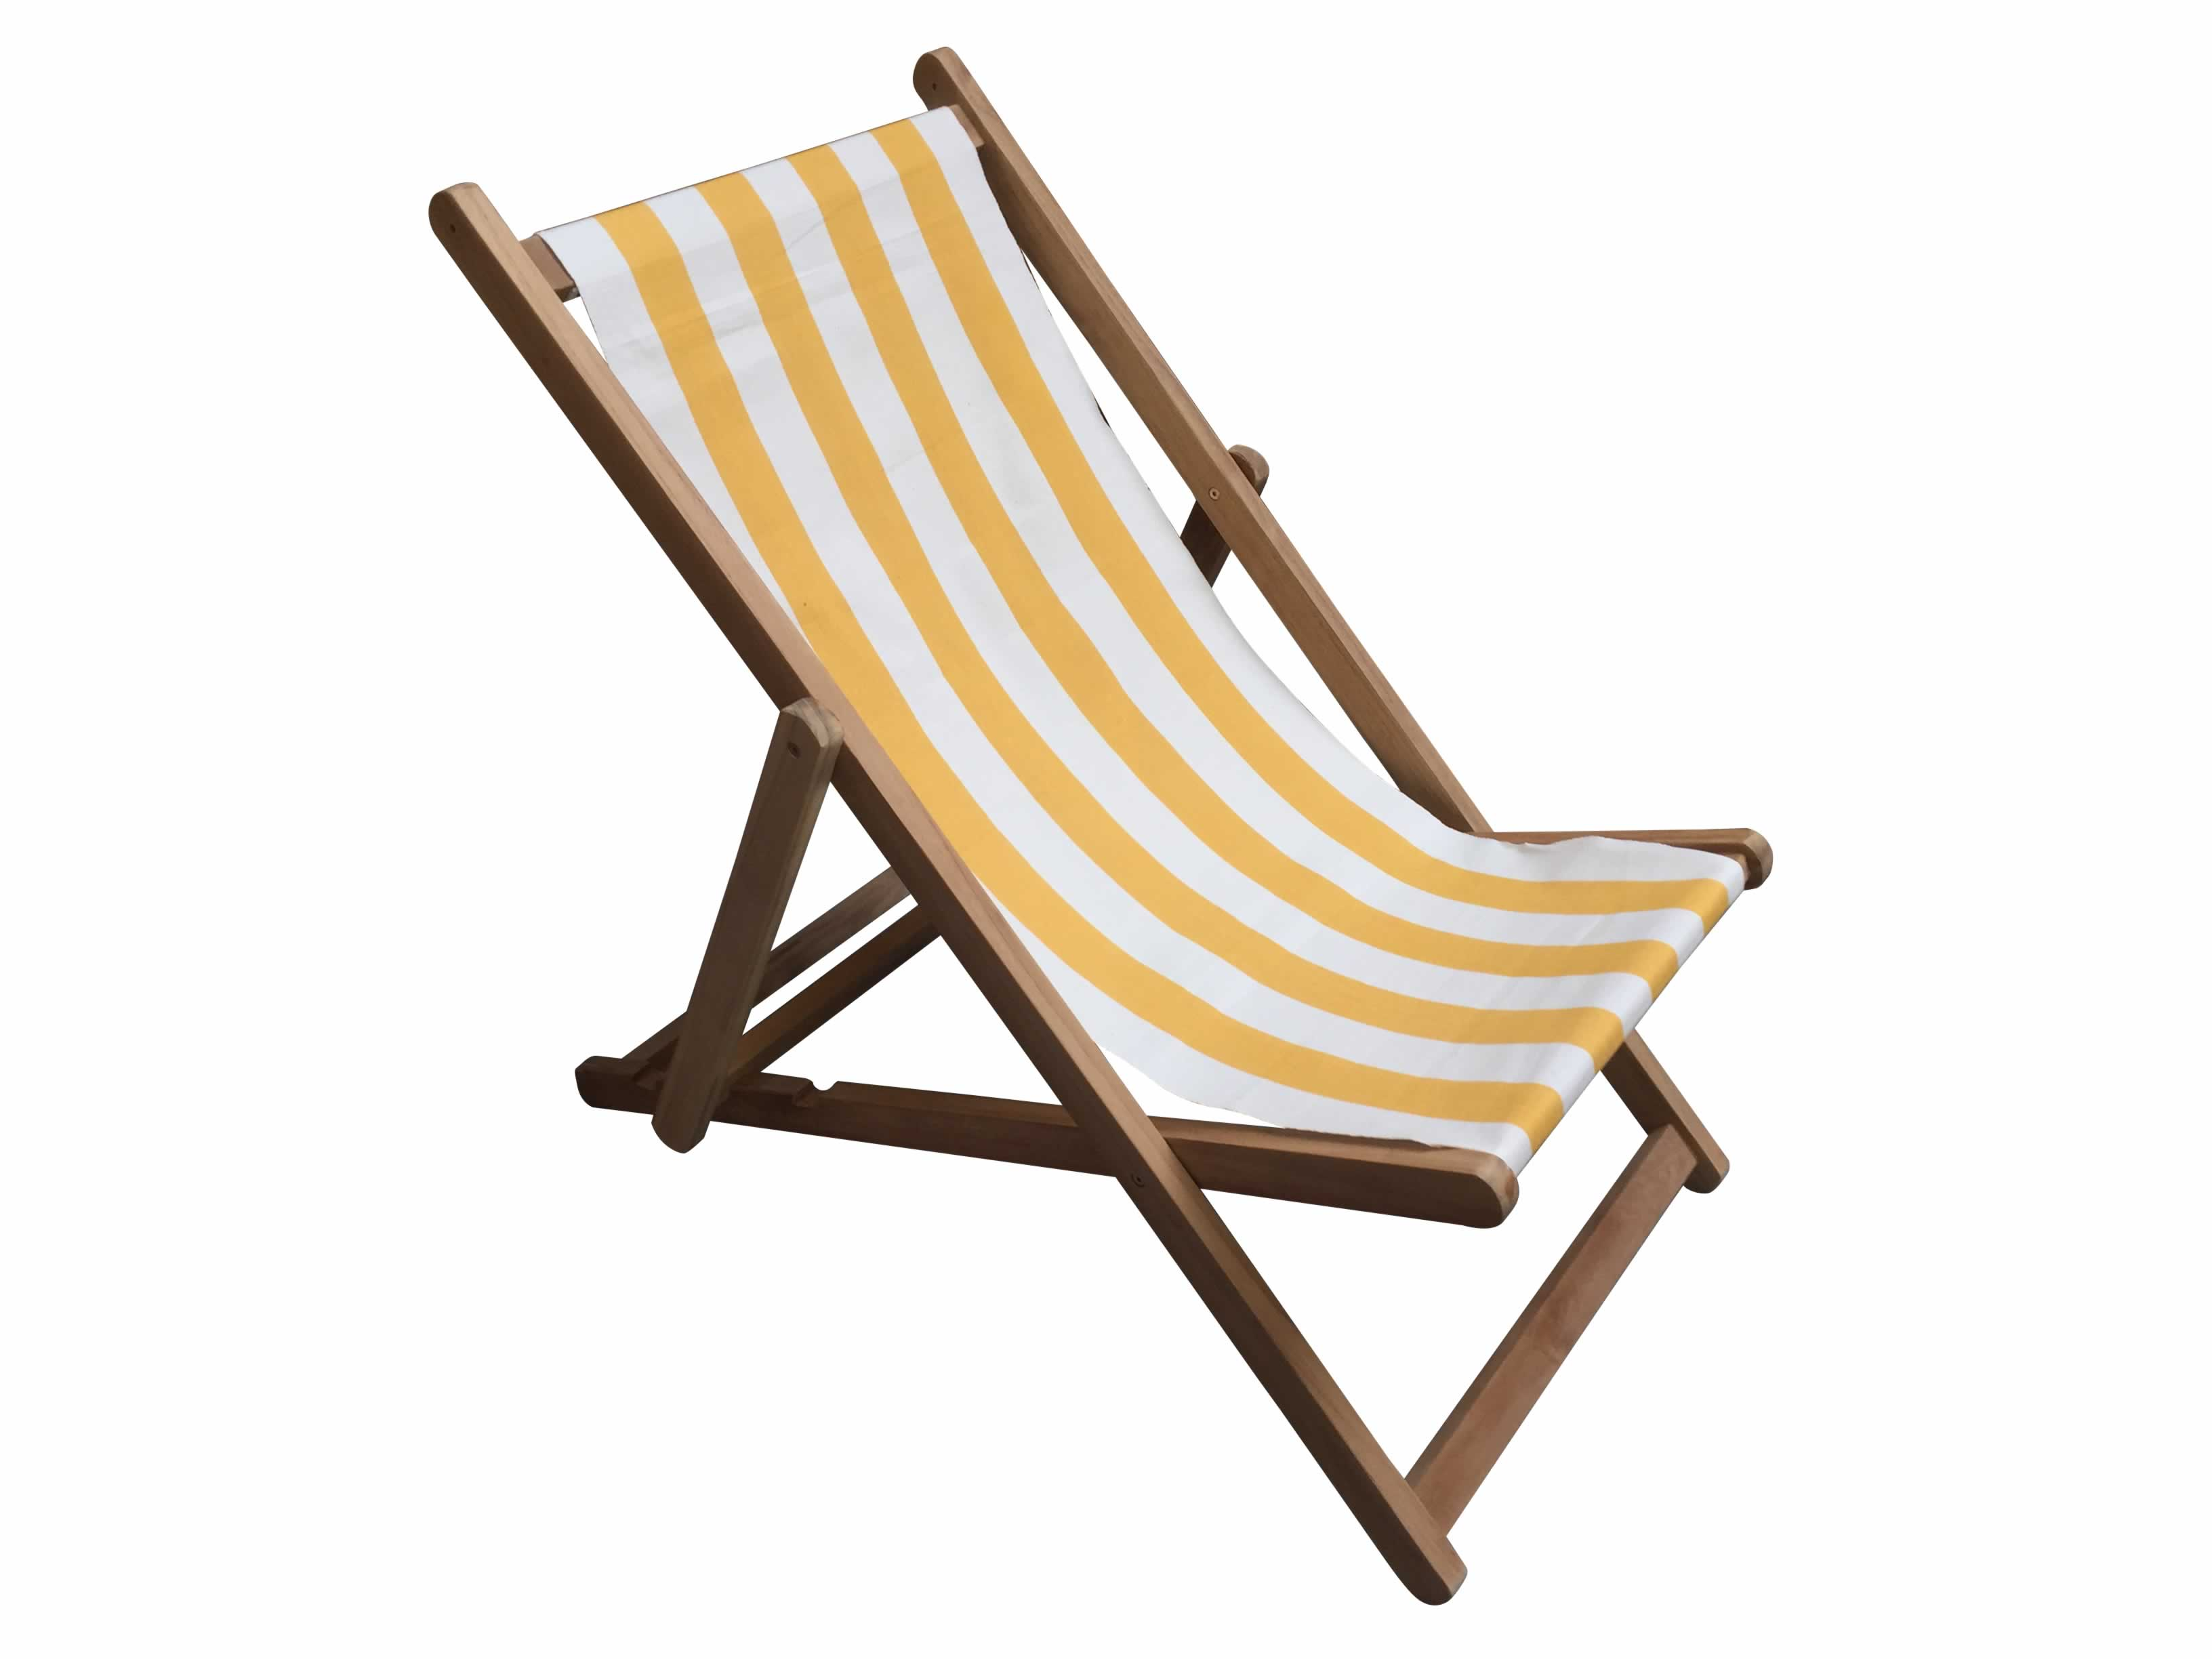 deckchairs buy folding wooden deck chairs the stripes. Black Bedroom Furniture Sets. Home Design Ideas